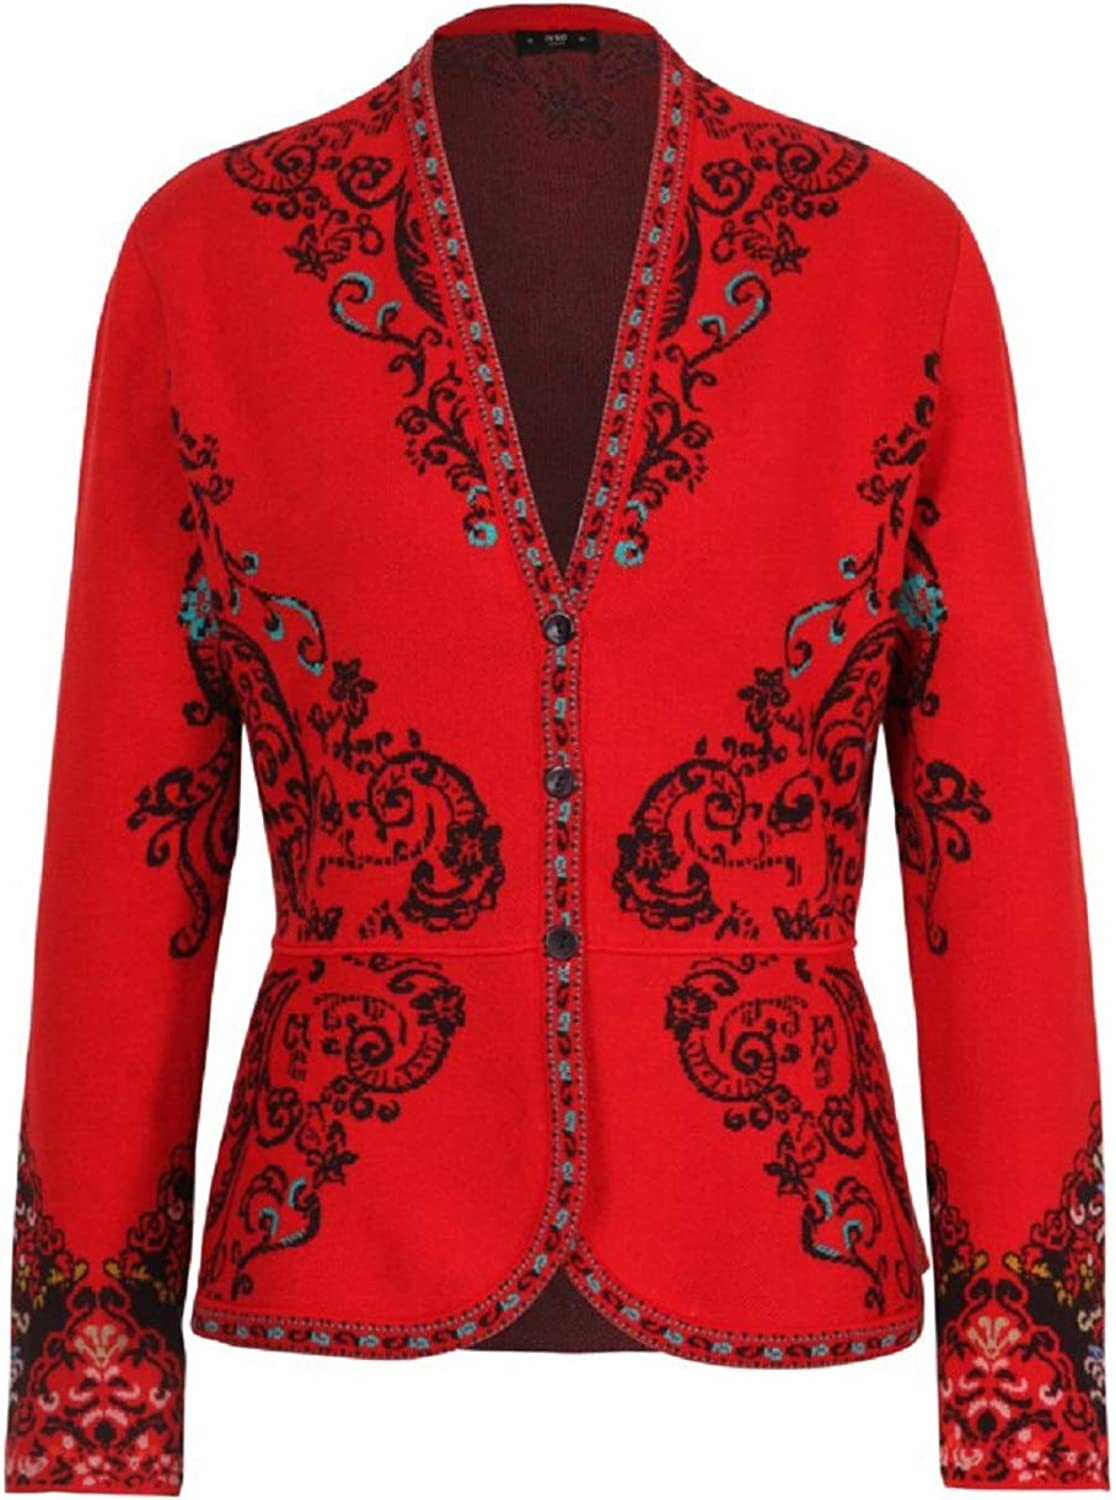 IVKO Floral Pattern Peplum Cardigan in Red Cotton Button Up Long Sleeve Sweater Jumper Jacket